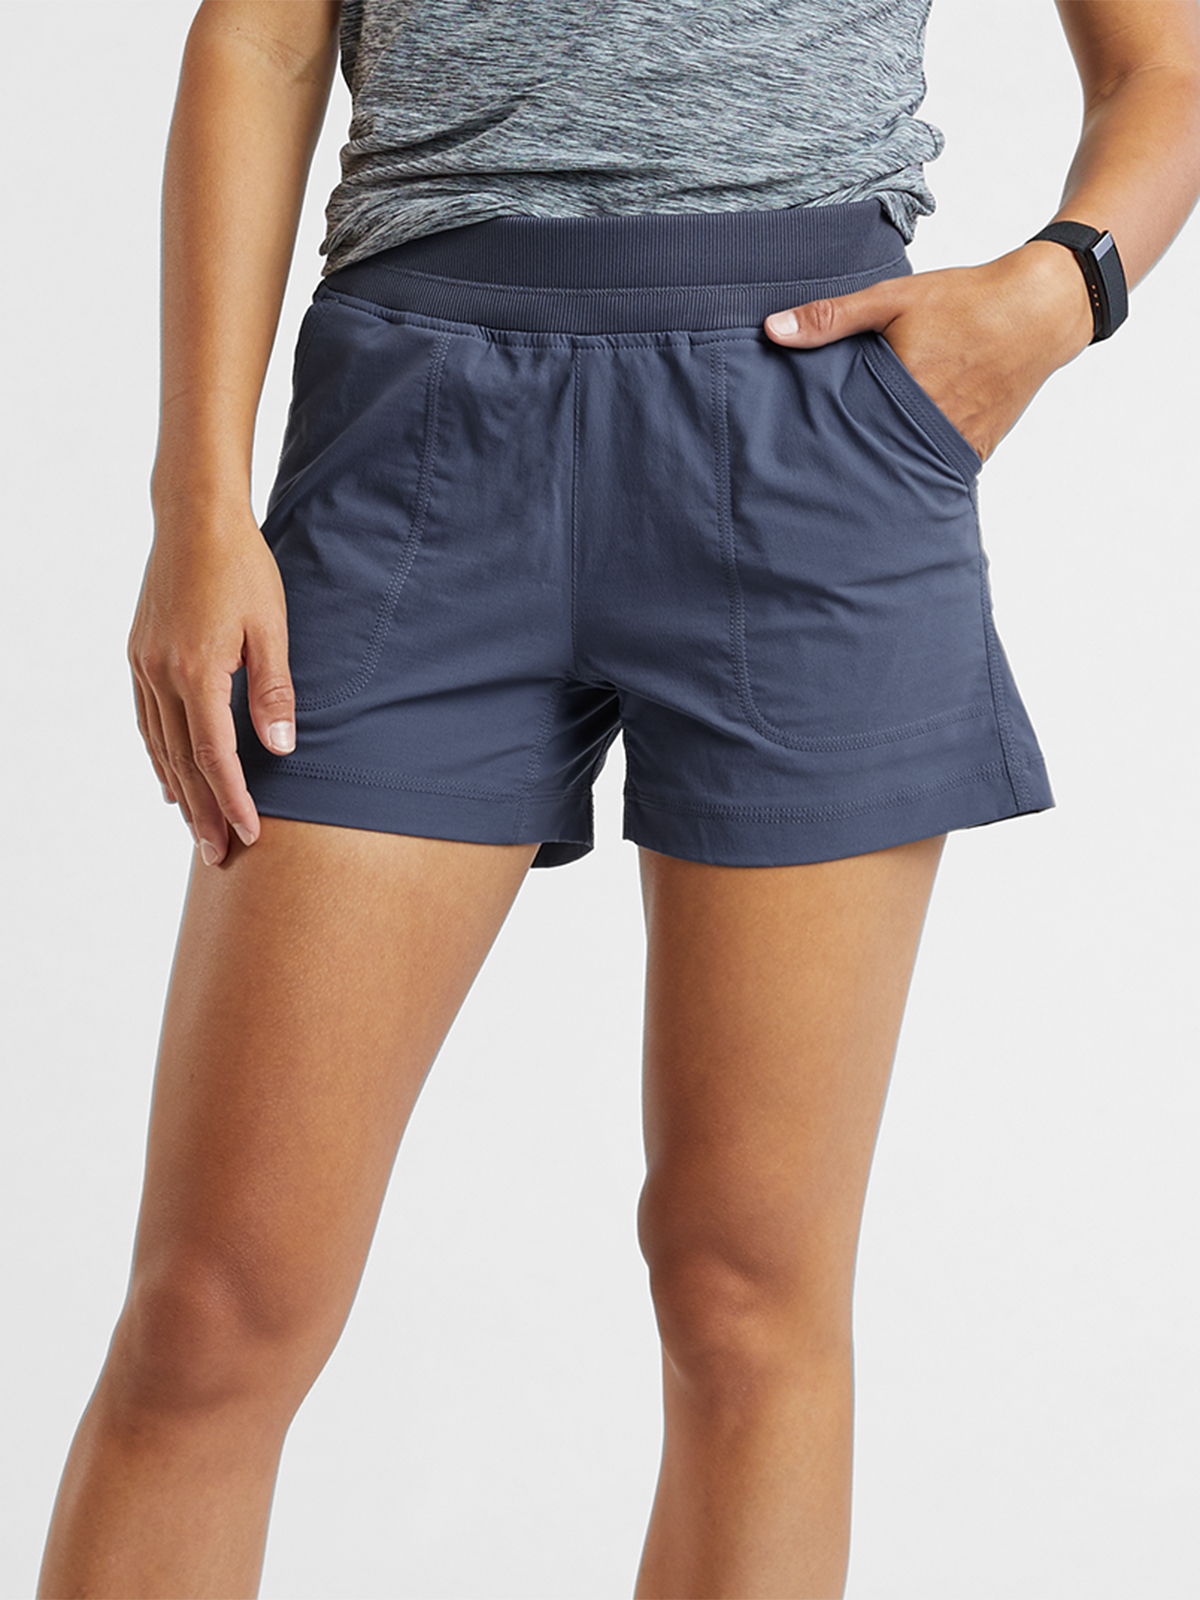 Nude Jersey Cycling Shorts | Shorts | Shorts | I SAW IT FIRST